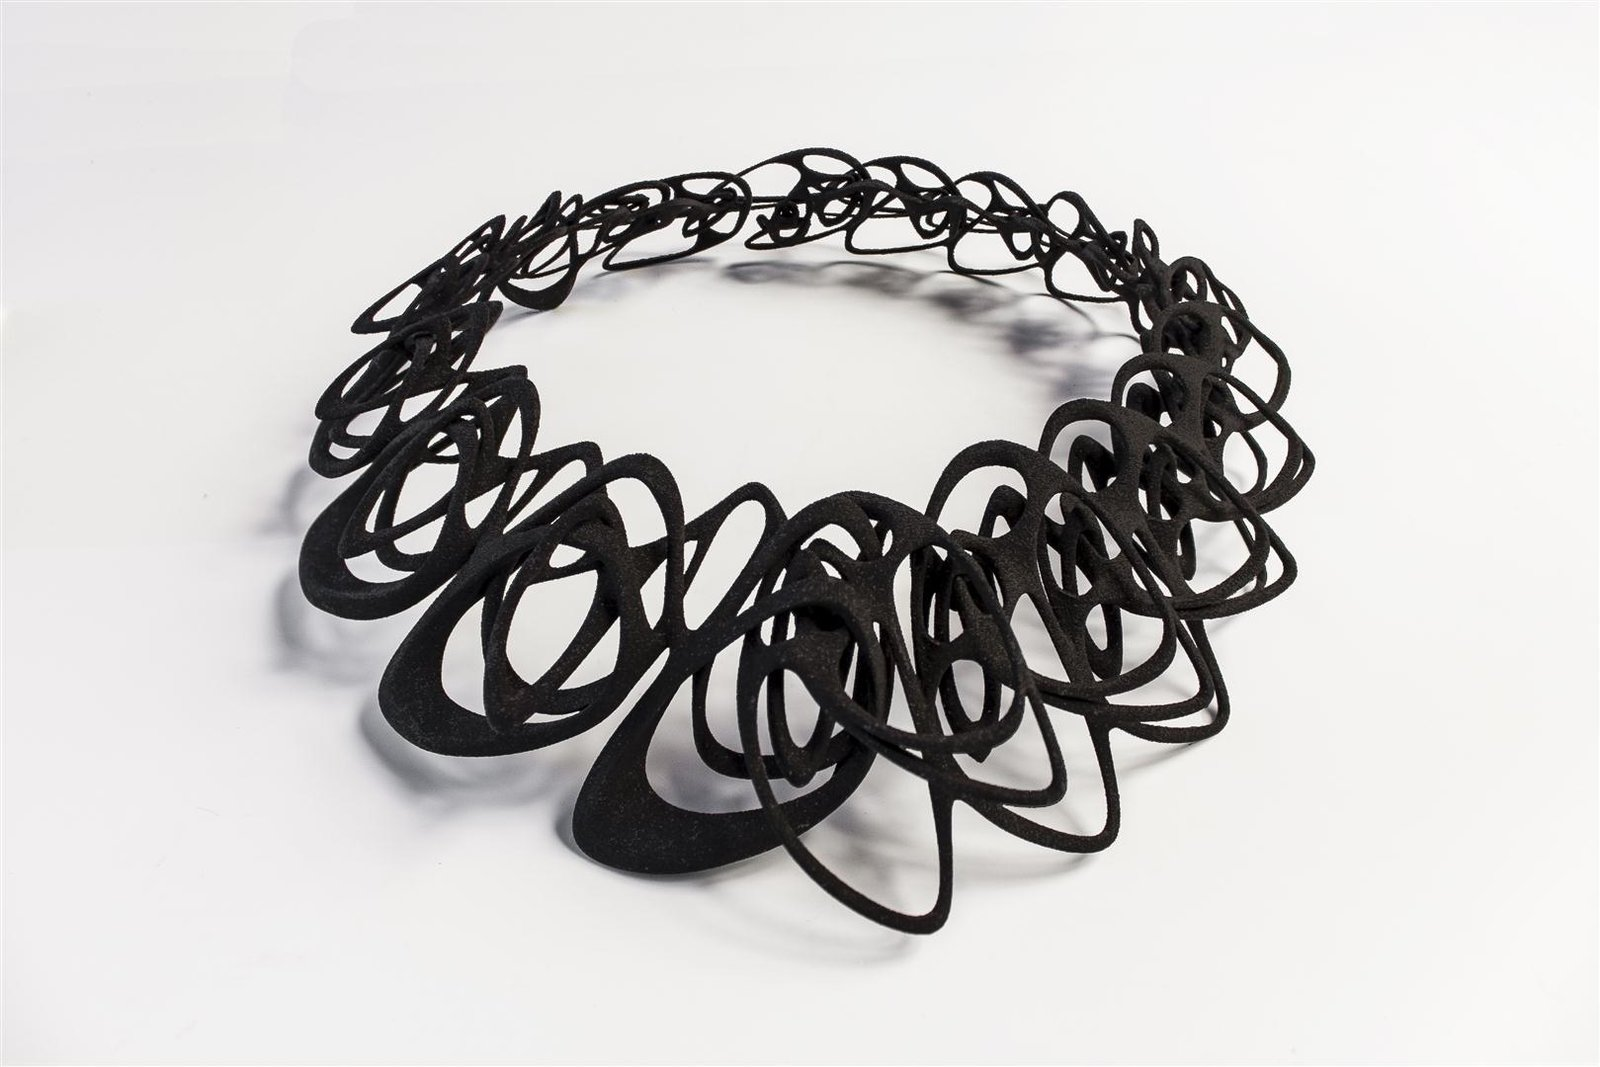 """The flexible nylon that makes up the Catena necklace has a distinct shimmer to it. """"I ended up using SLS [selective laser sintering; a common 3-D process] polished nylon for all of the smaller jewelry pieces, like earrings and rings, and SLS flexible nylon for the necklaces,"""" says Wu.  Photo 1 of 5 in Stunning Modern 3-D Printed Jewelry"""